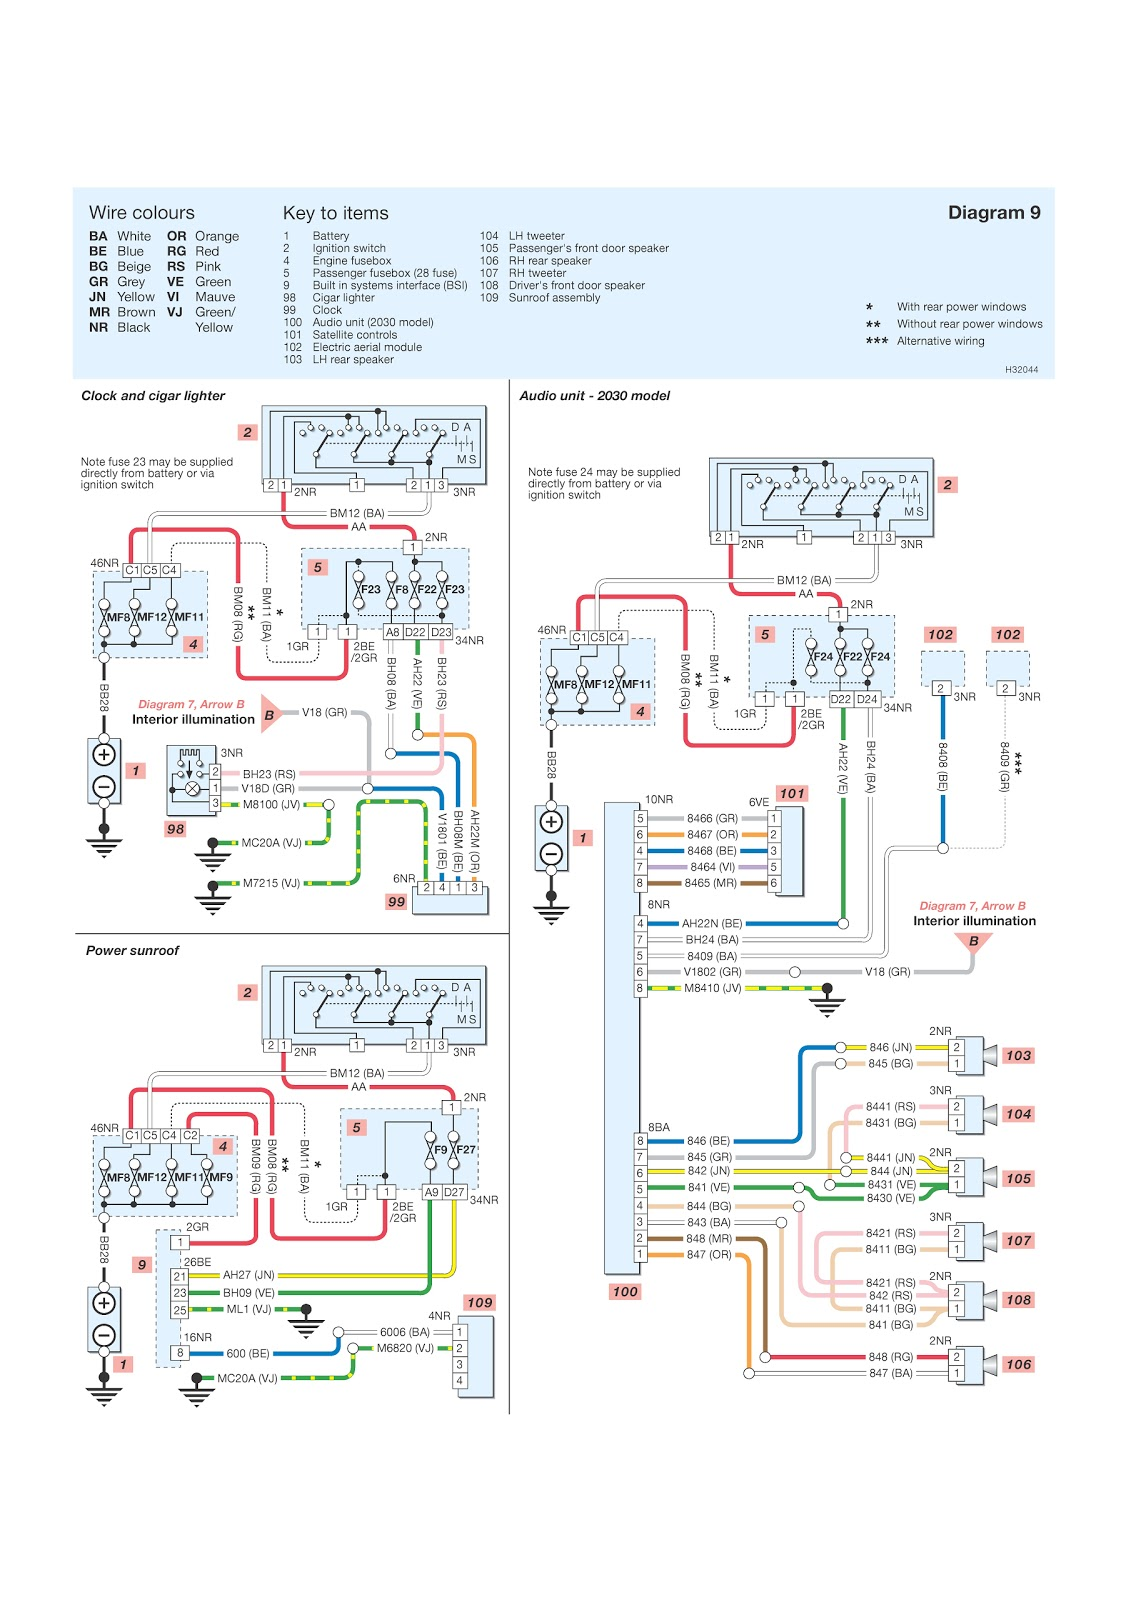 peugeot 206 wiring diagram radio peugeot 206 wiring diagram airbag peugeot 206 system wiring diagrams clock, cigar lighter ...